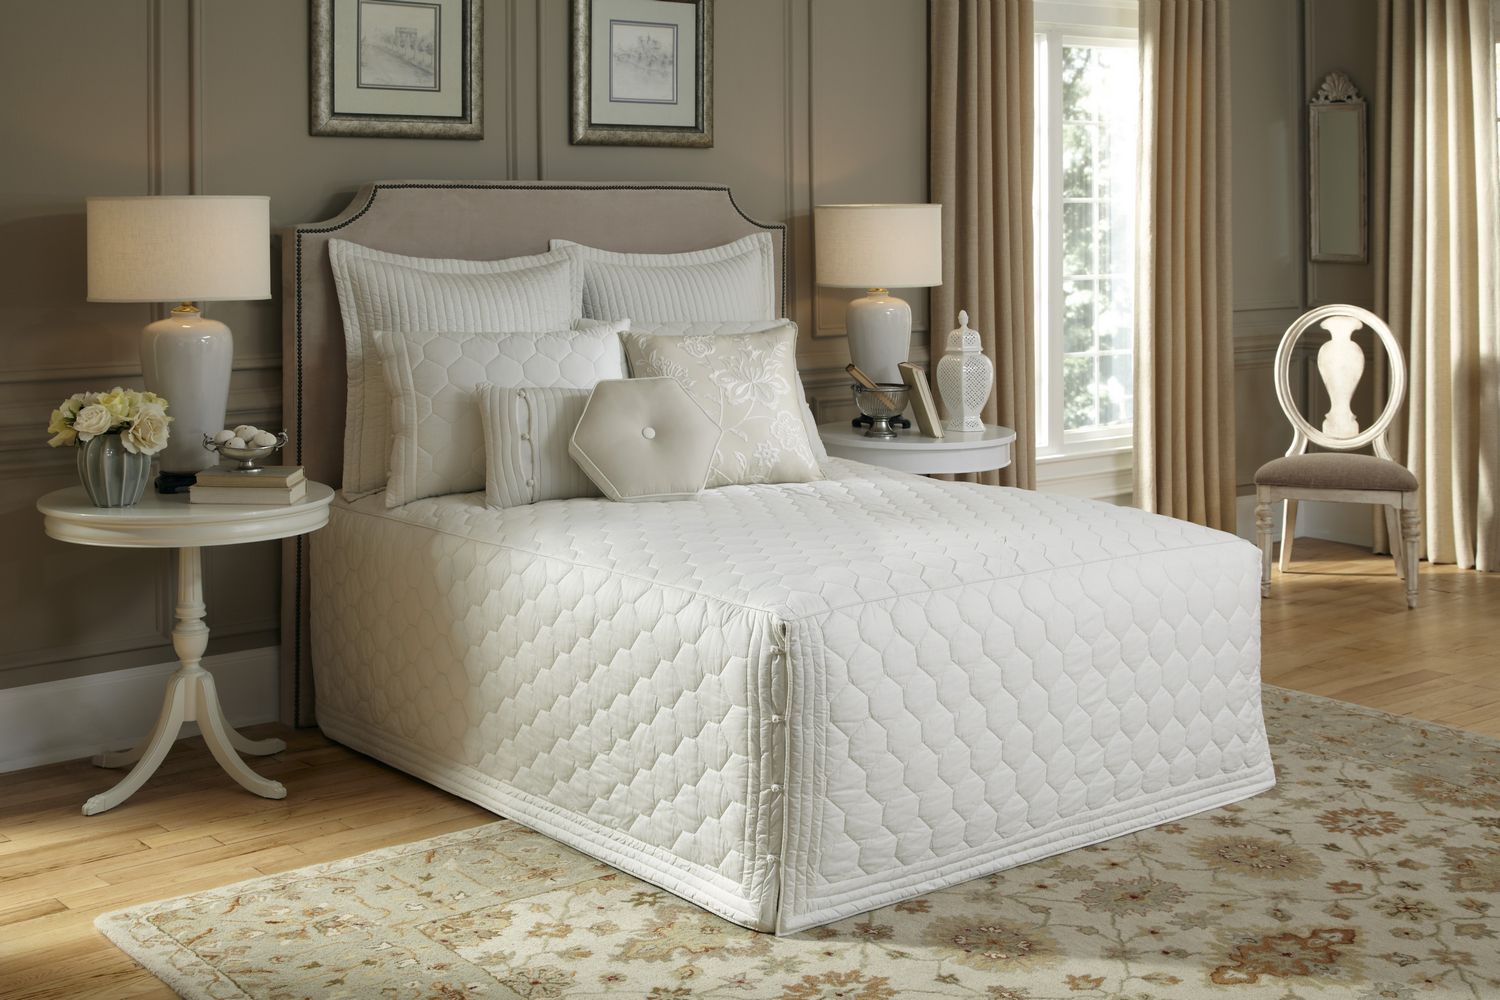 Lexington Ivory Bedspread Collection By Nostalgia Heirloom